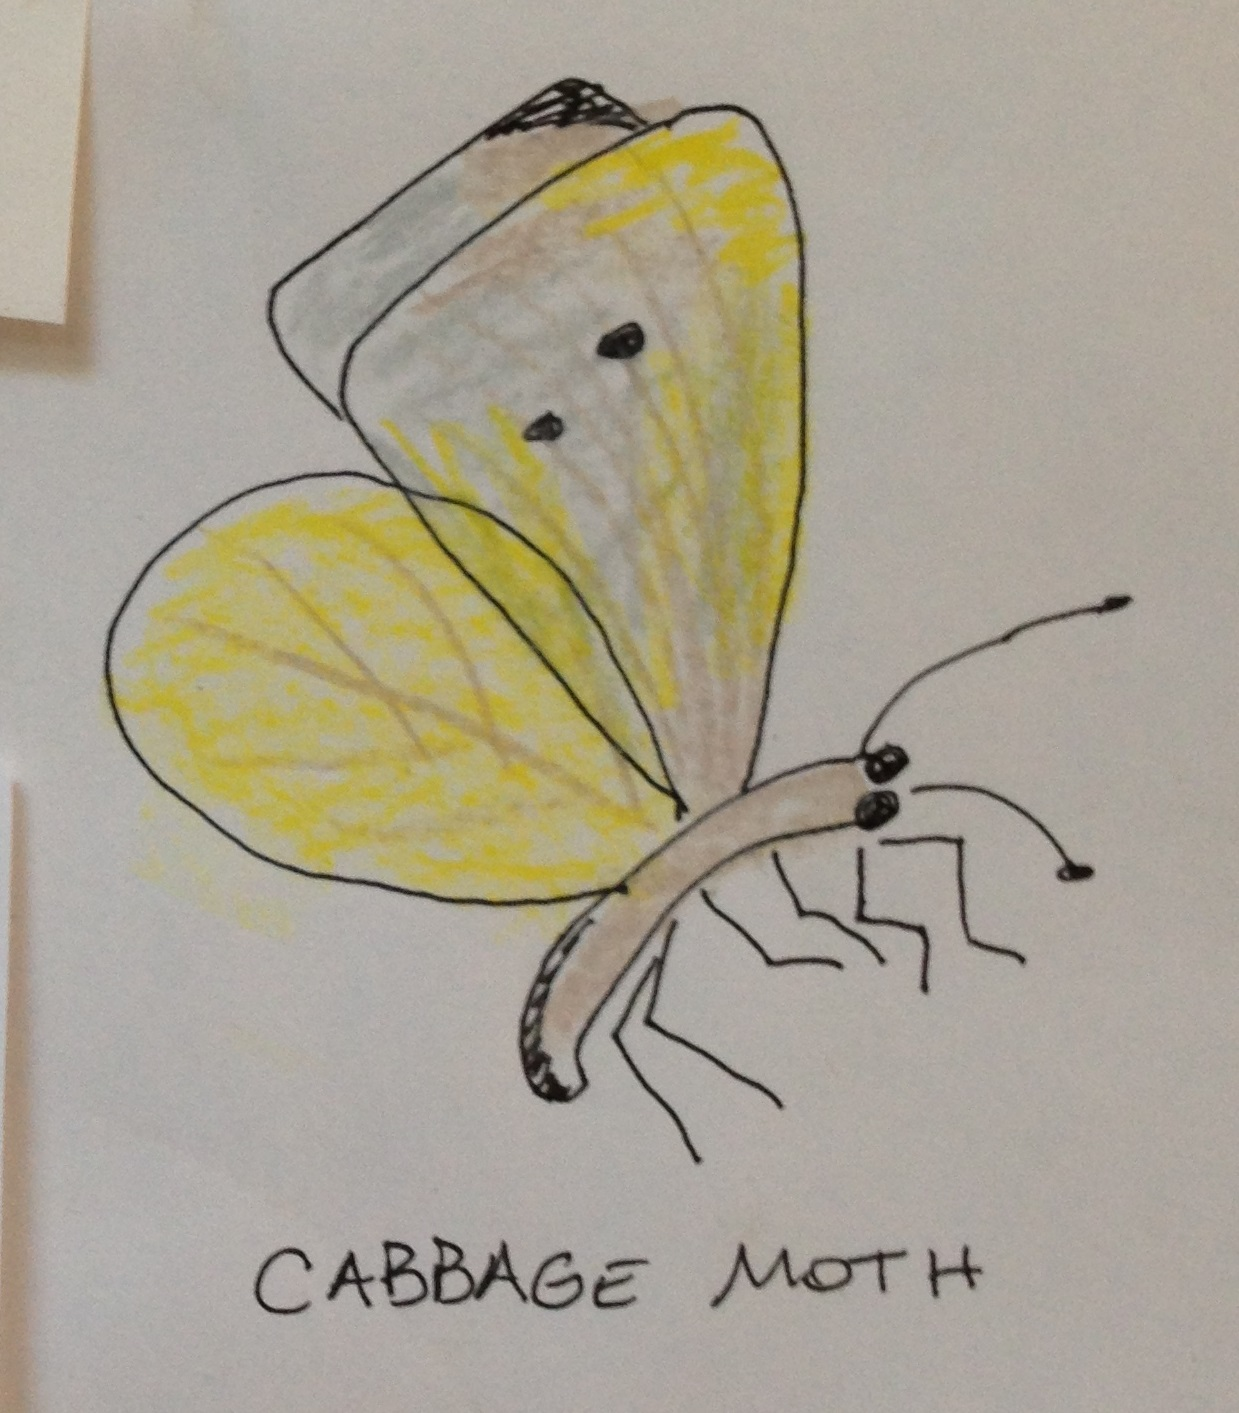 Cabbage Moth adb.jpg